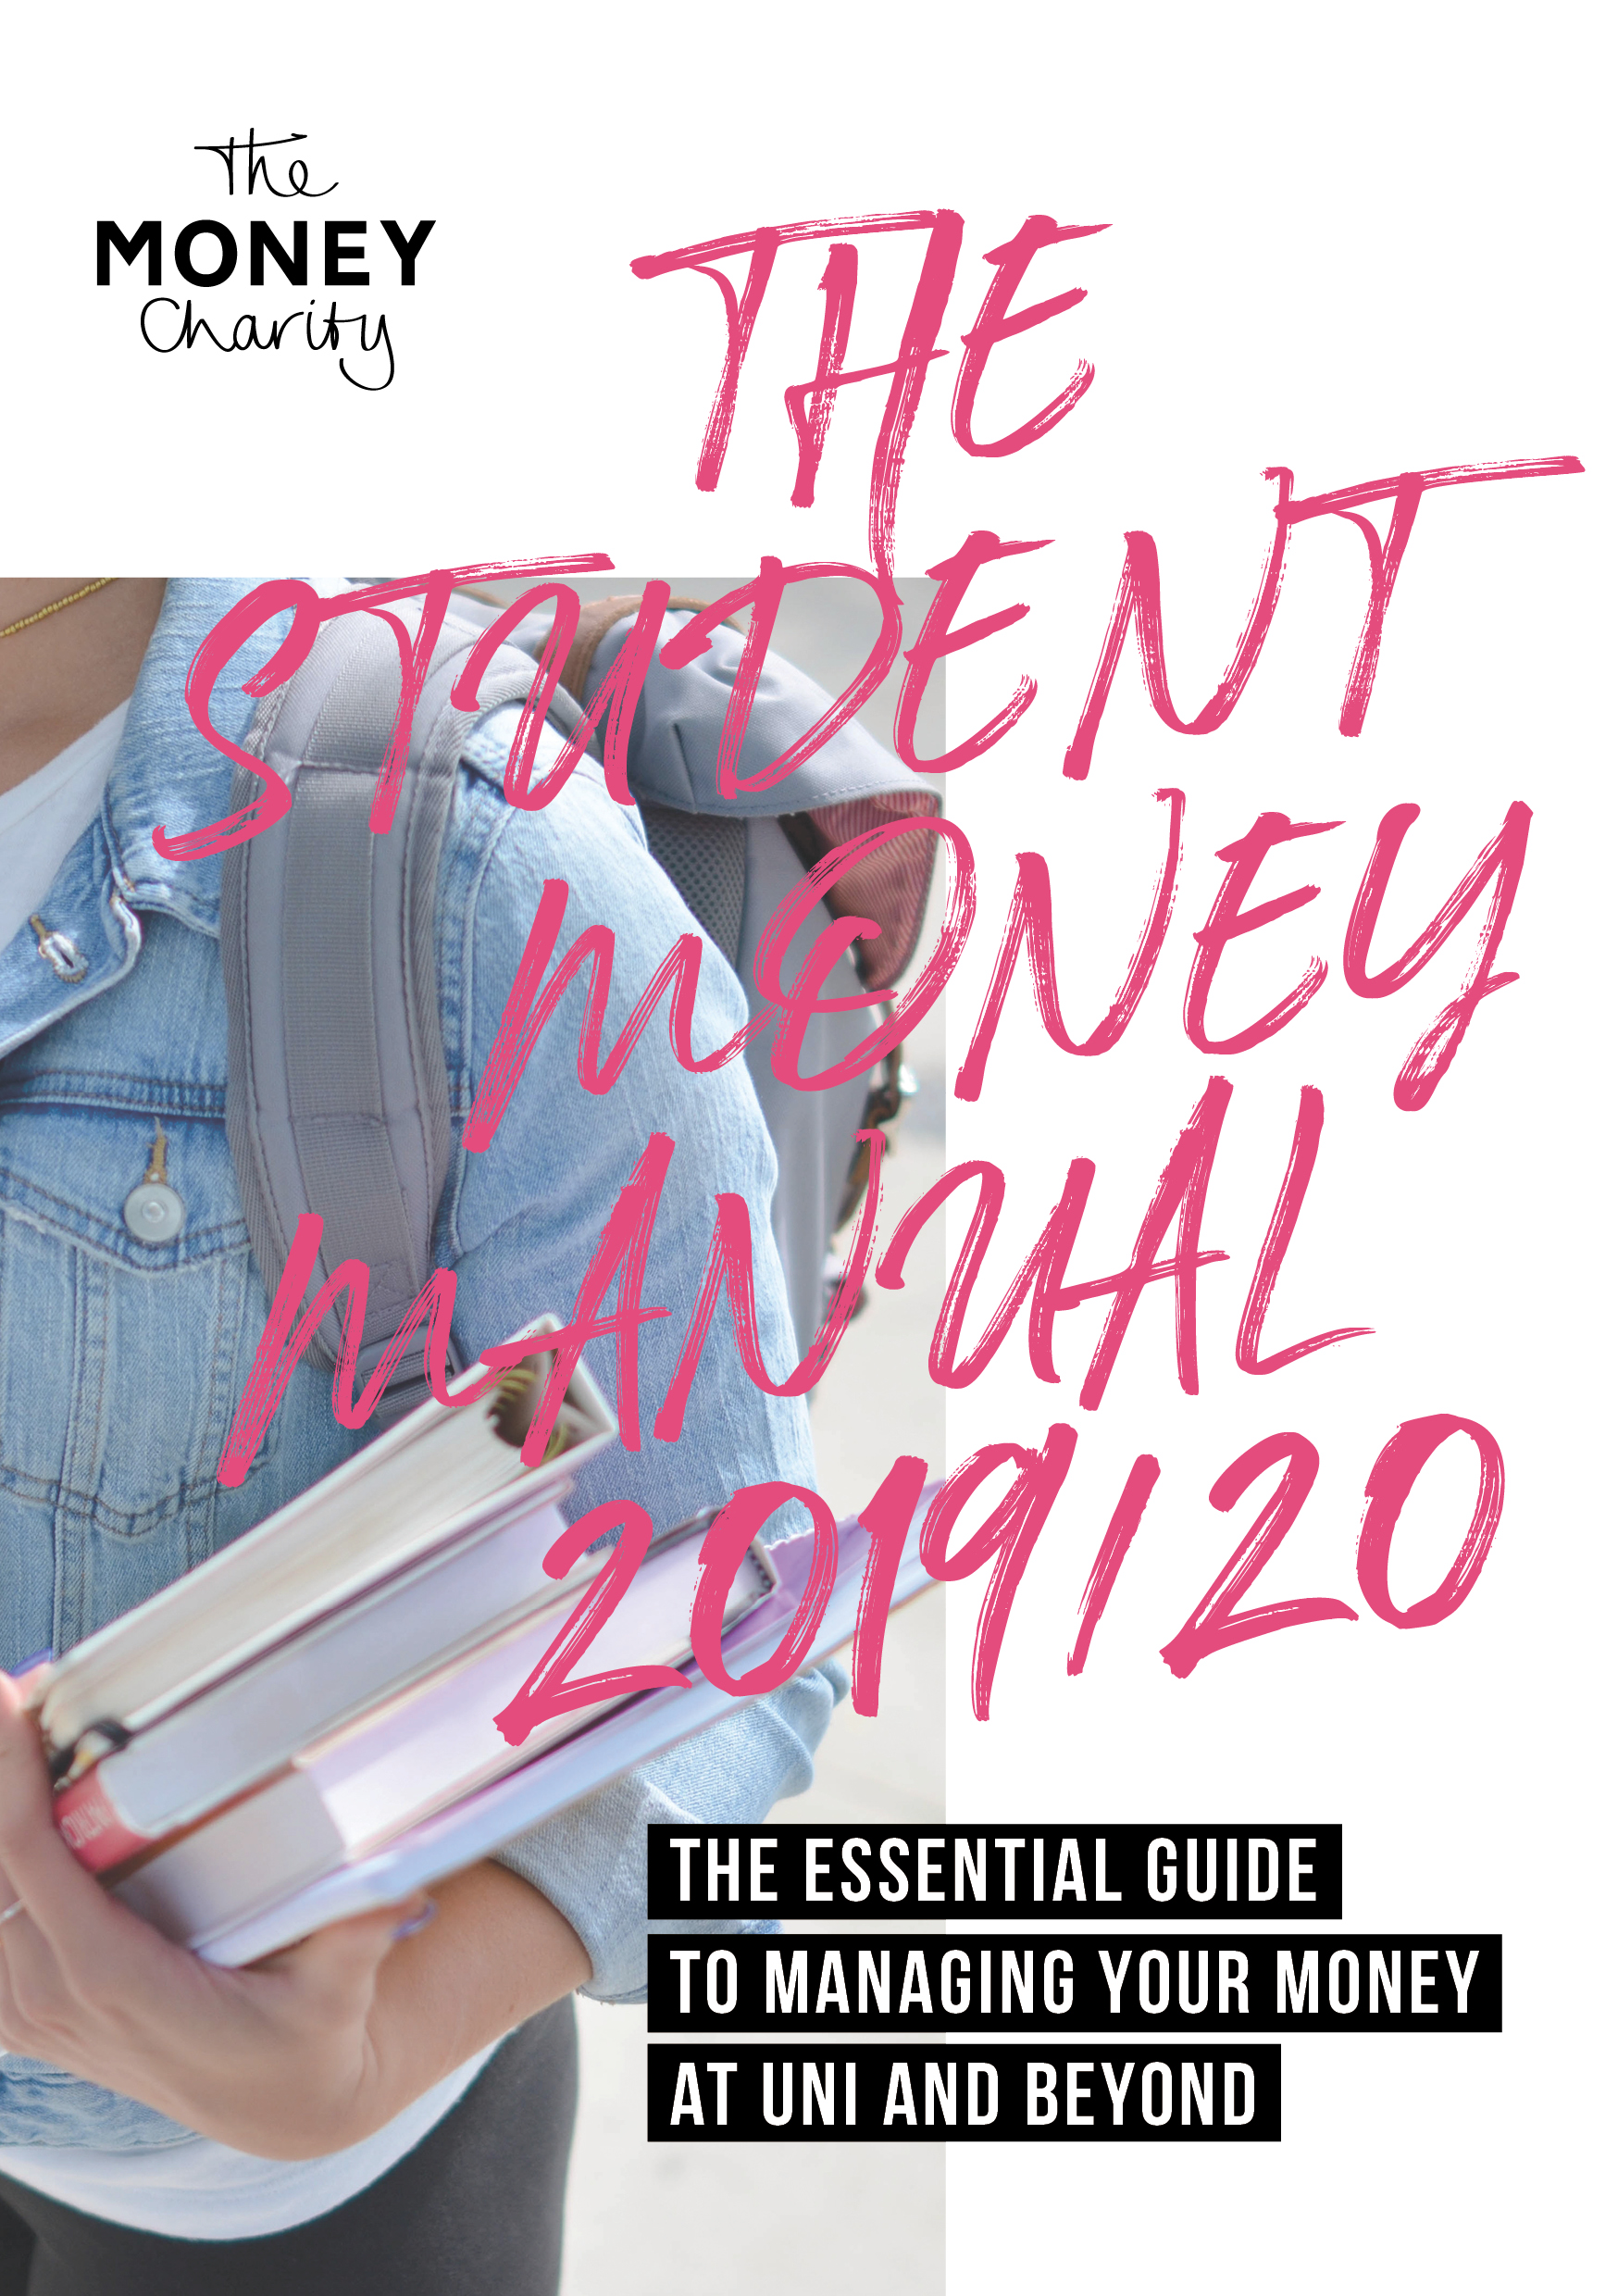 The Student Money Manual